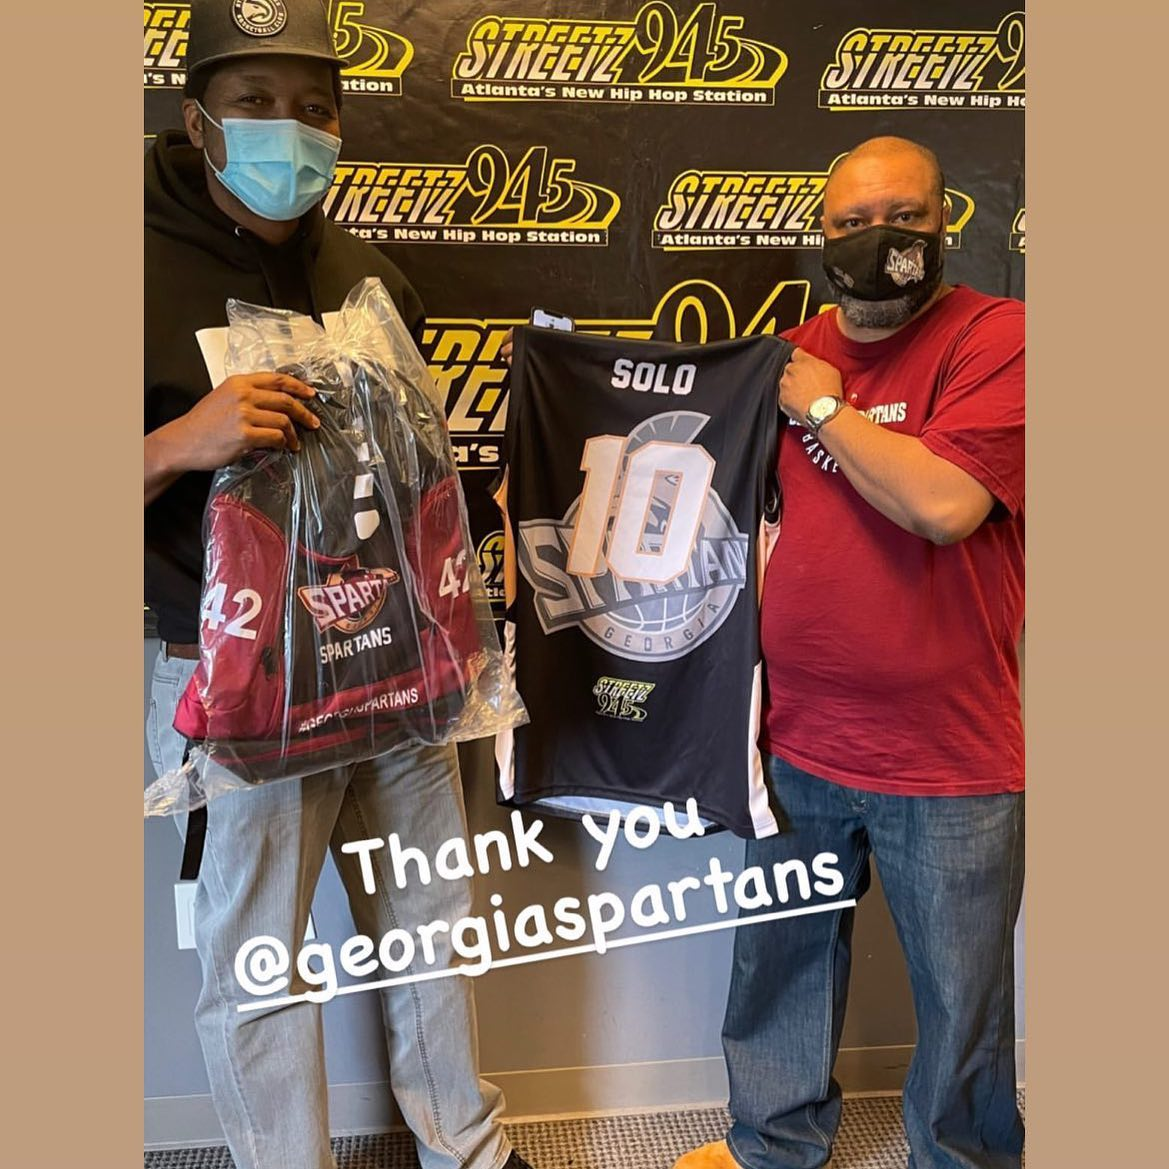 We Presented @usofsolo of @streetz945atl his personal jersey today. Thanks again #streetz945atl for being a sponsors!! Check out o